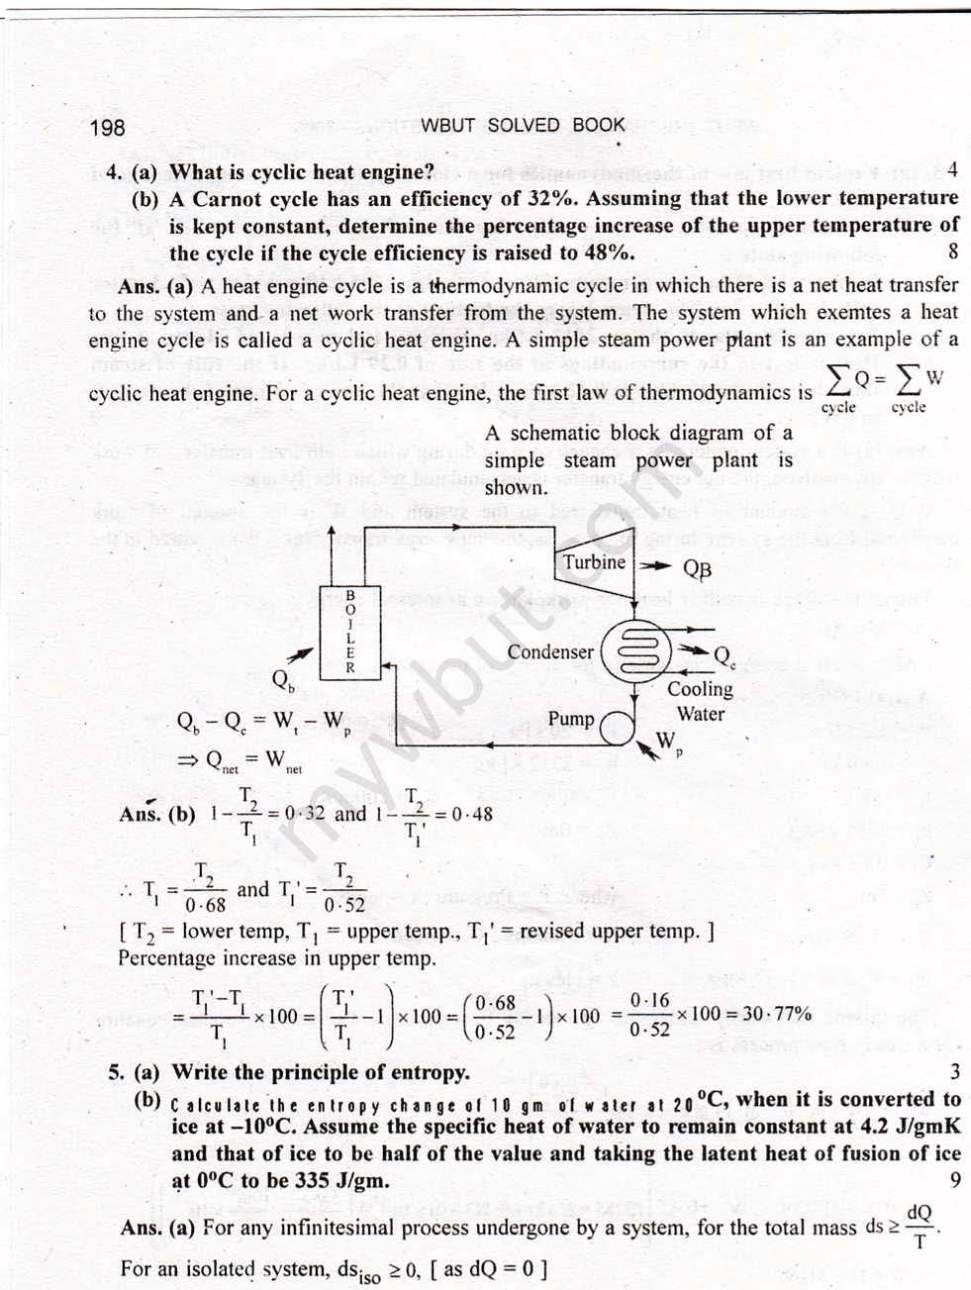 essay about mechanical engineering Search to find a specific engineering essay or browse from the list below: wind stability engineering in high rise buildings in building construction, there is a reciprocal relationship between forces within and external to the structure that directly affect stability and longevity.